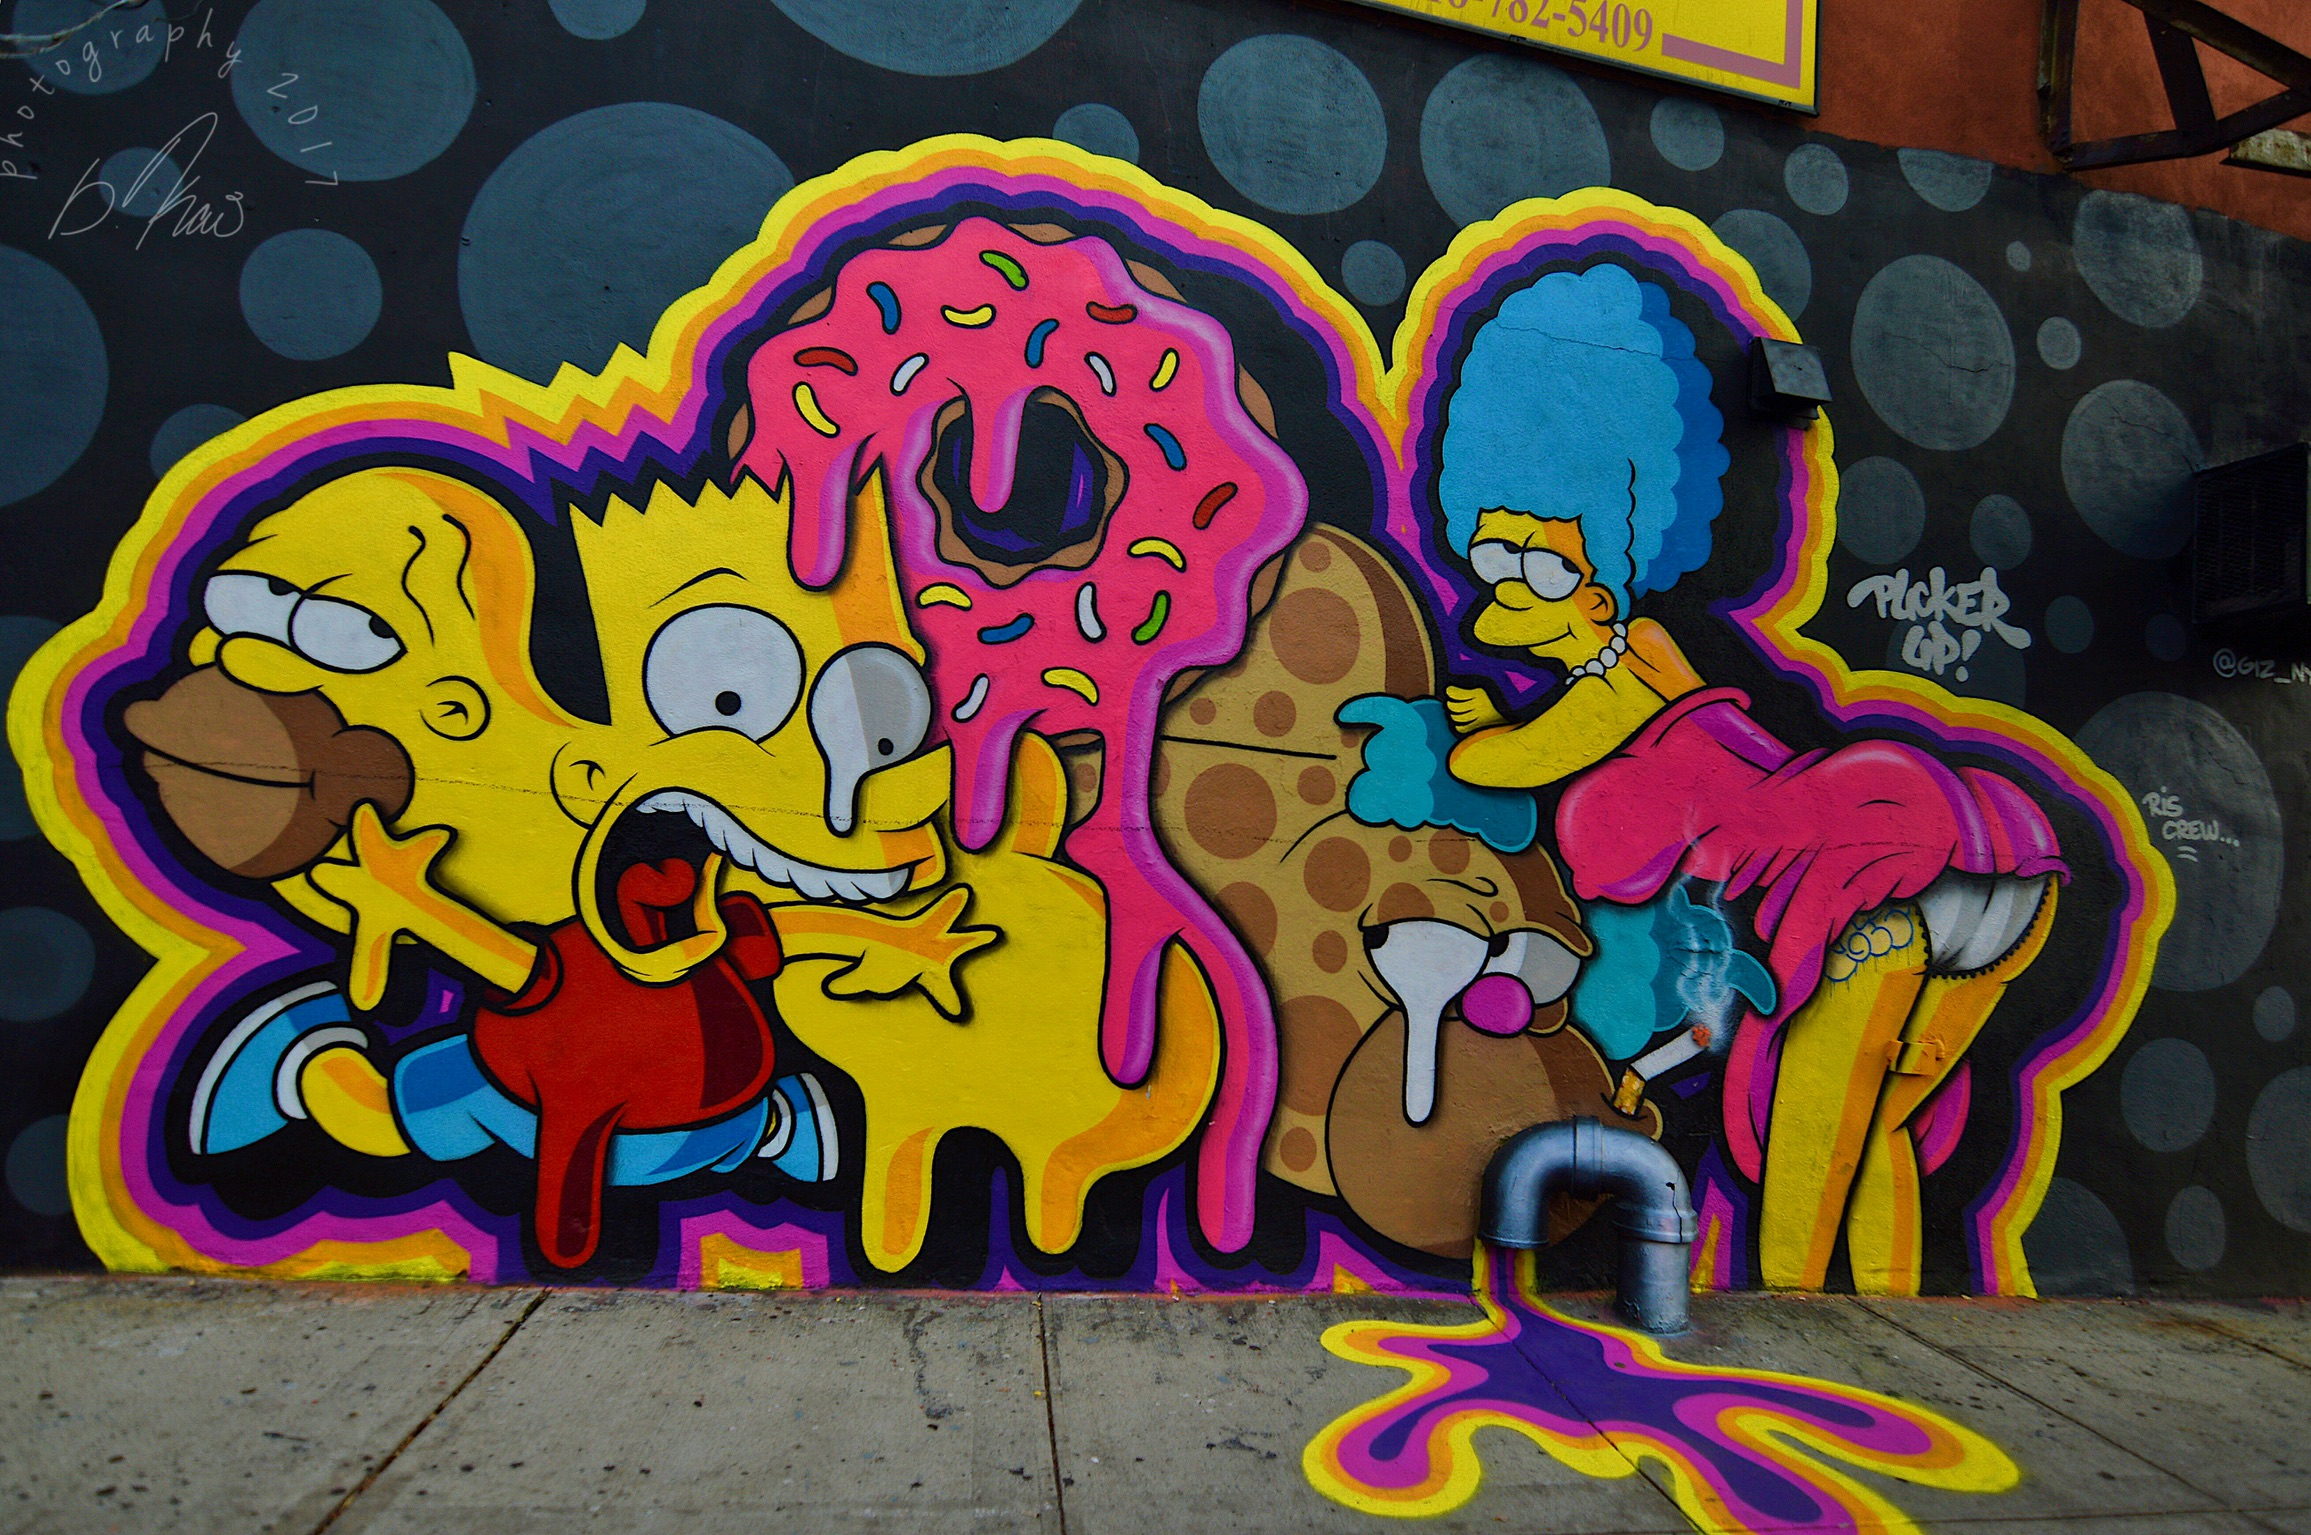 Simpsons Meets Giz